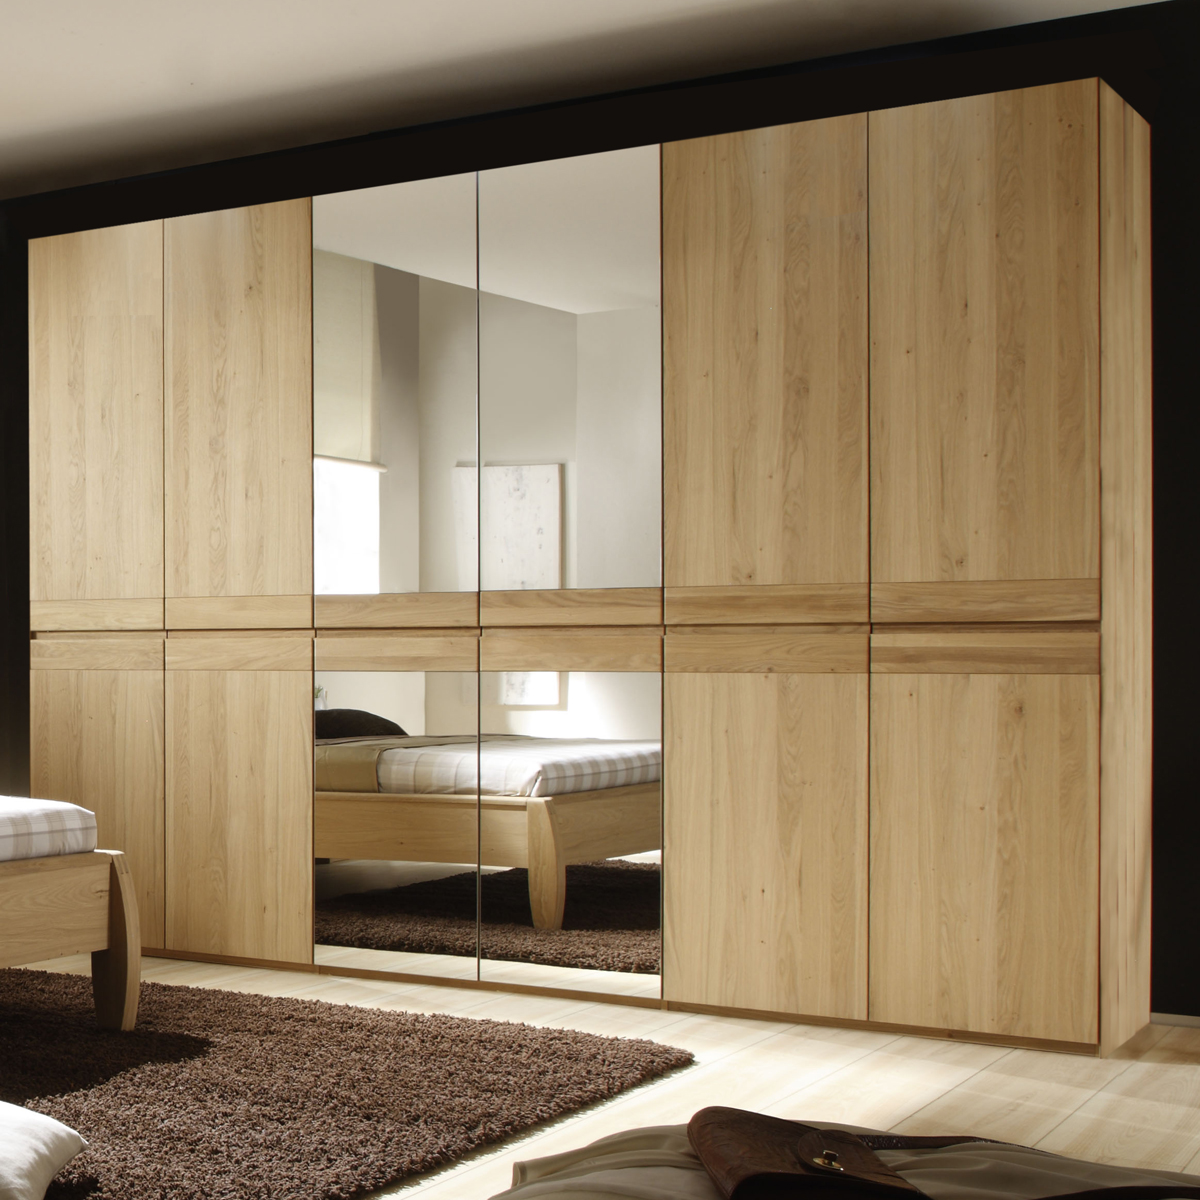 kleiderschrank yuma 6 t rig schrank schlafzimmer in eiche. Black Bedroom Furniture Sets. Home Design Ideas